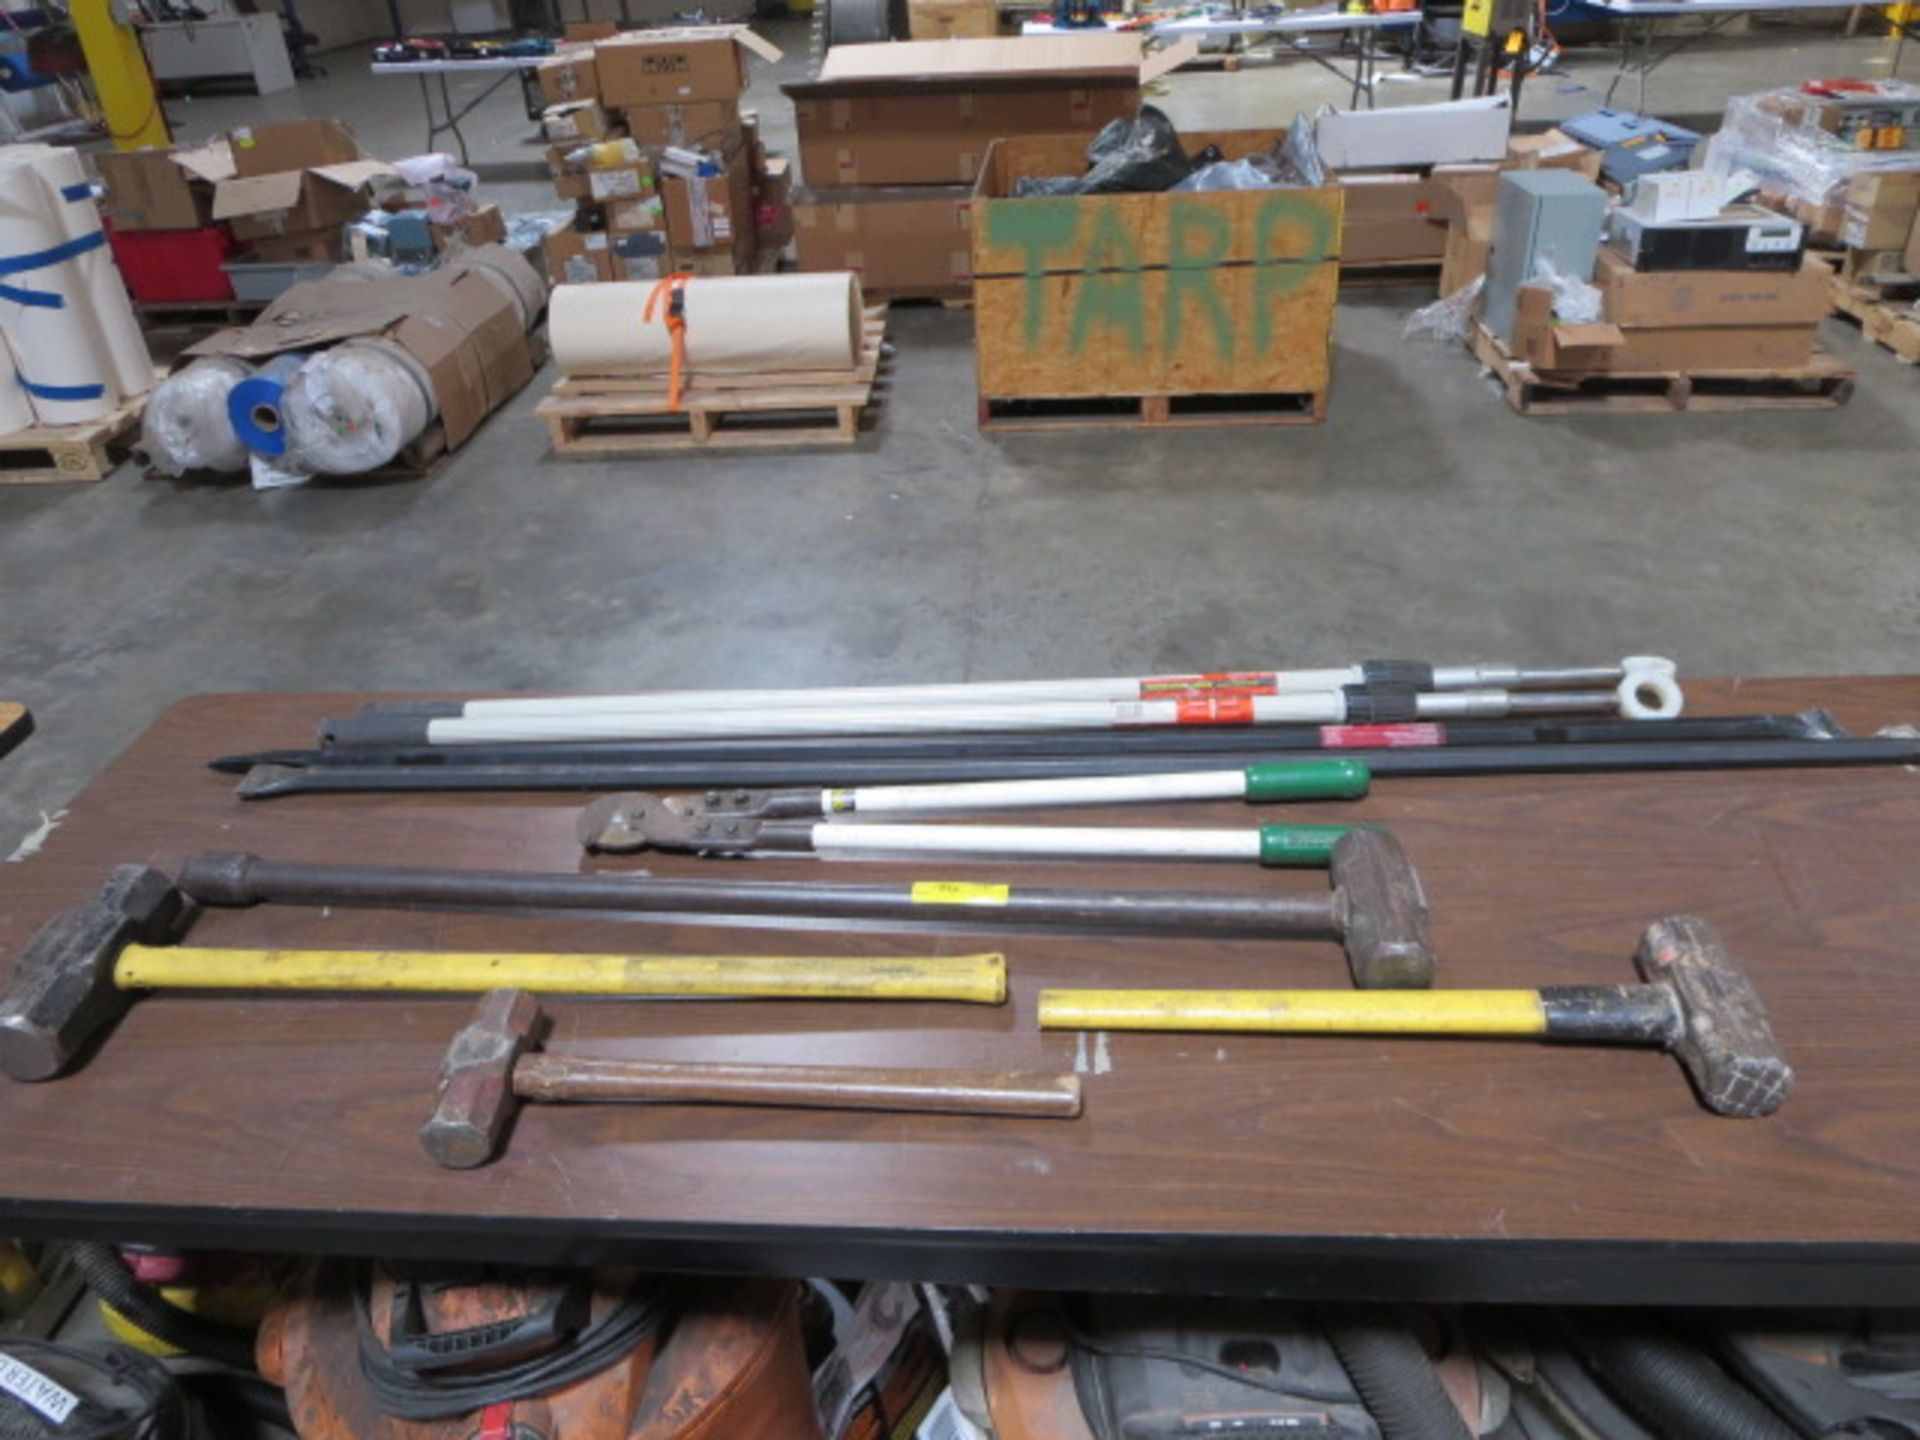 Lotto 186 - Lot of Sledge Hammers, Cutters, Pry Bars, and Pole Extenders, 9pcs